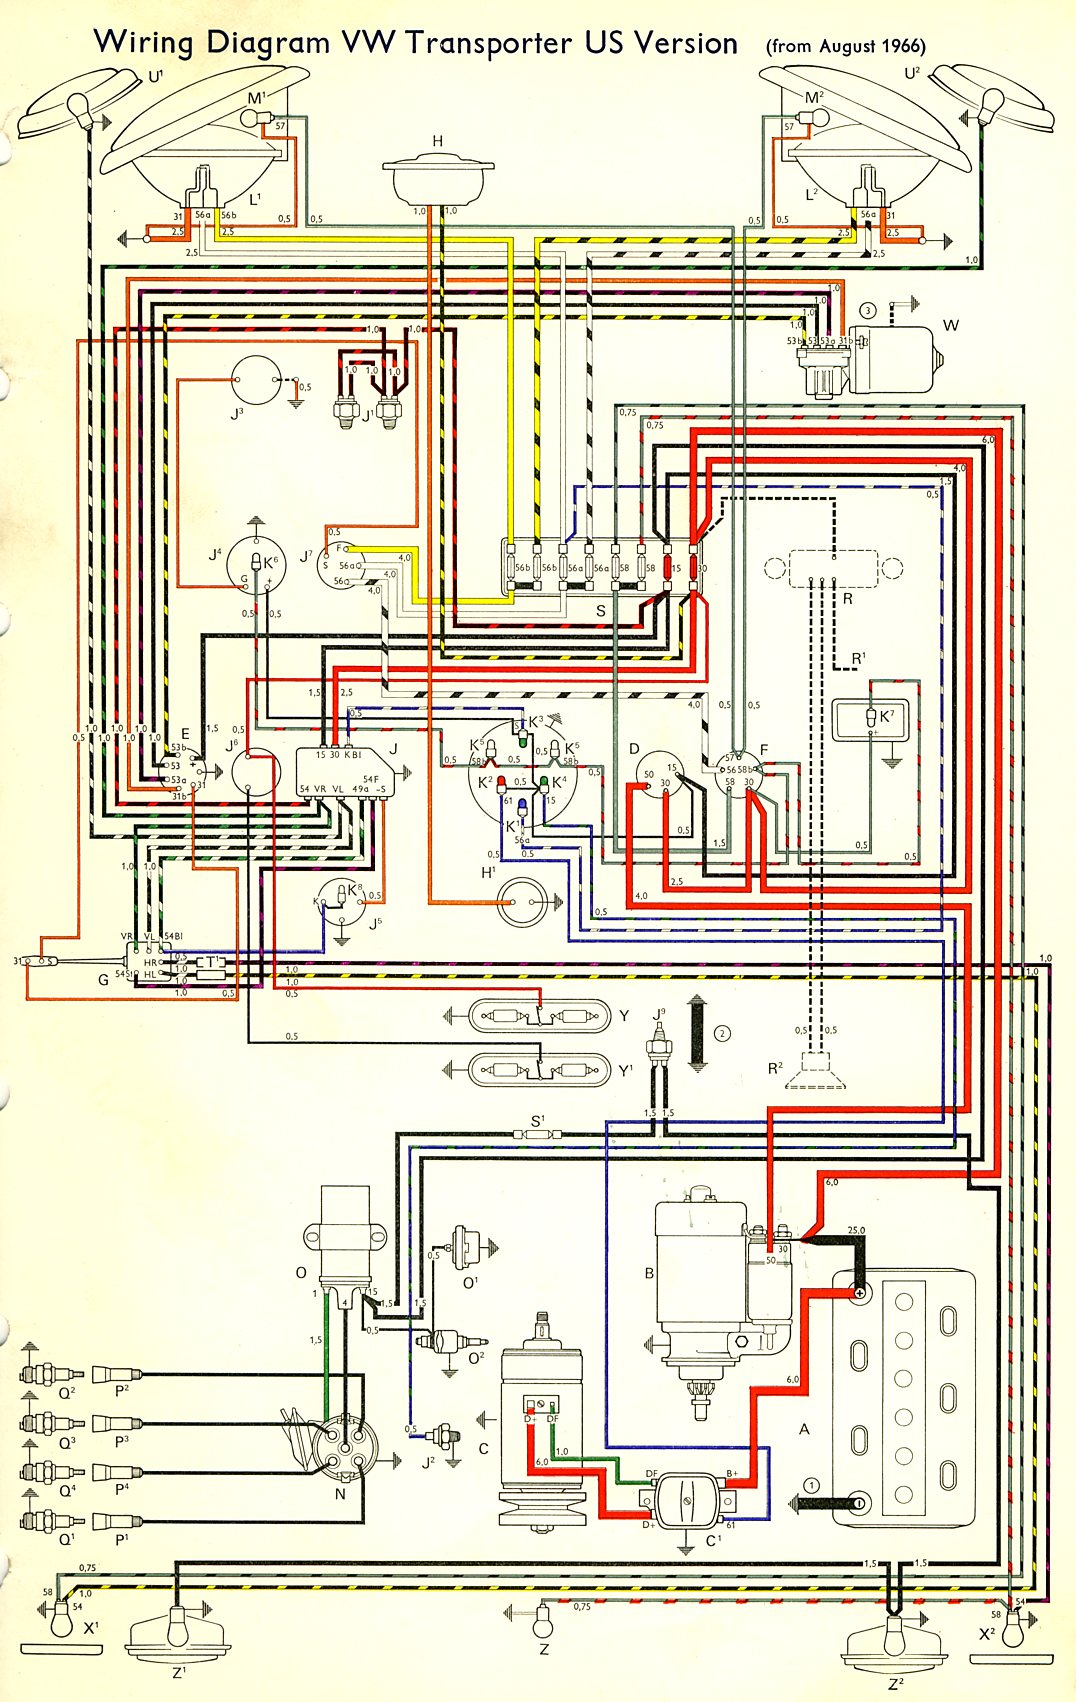 bus_67_USA 1967 bus wiring diagram (usa) thegoldenbug com 1971 vw bus wiring diagram at cos-gaming.co